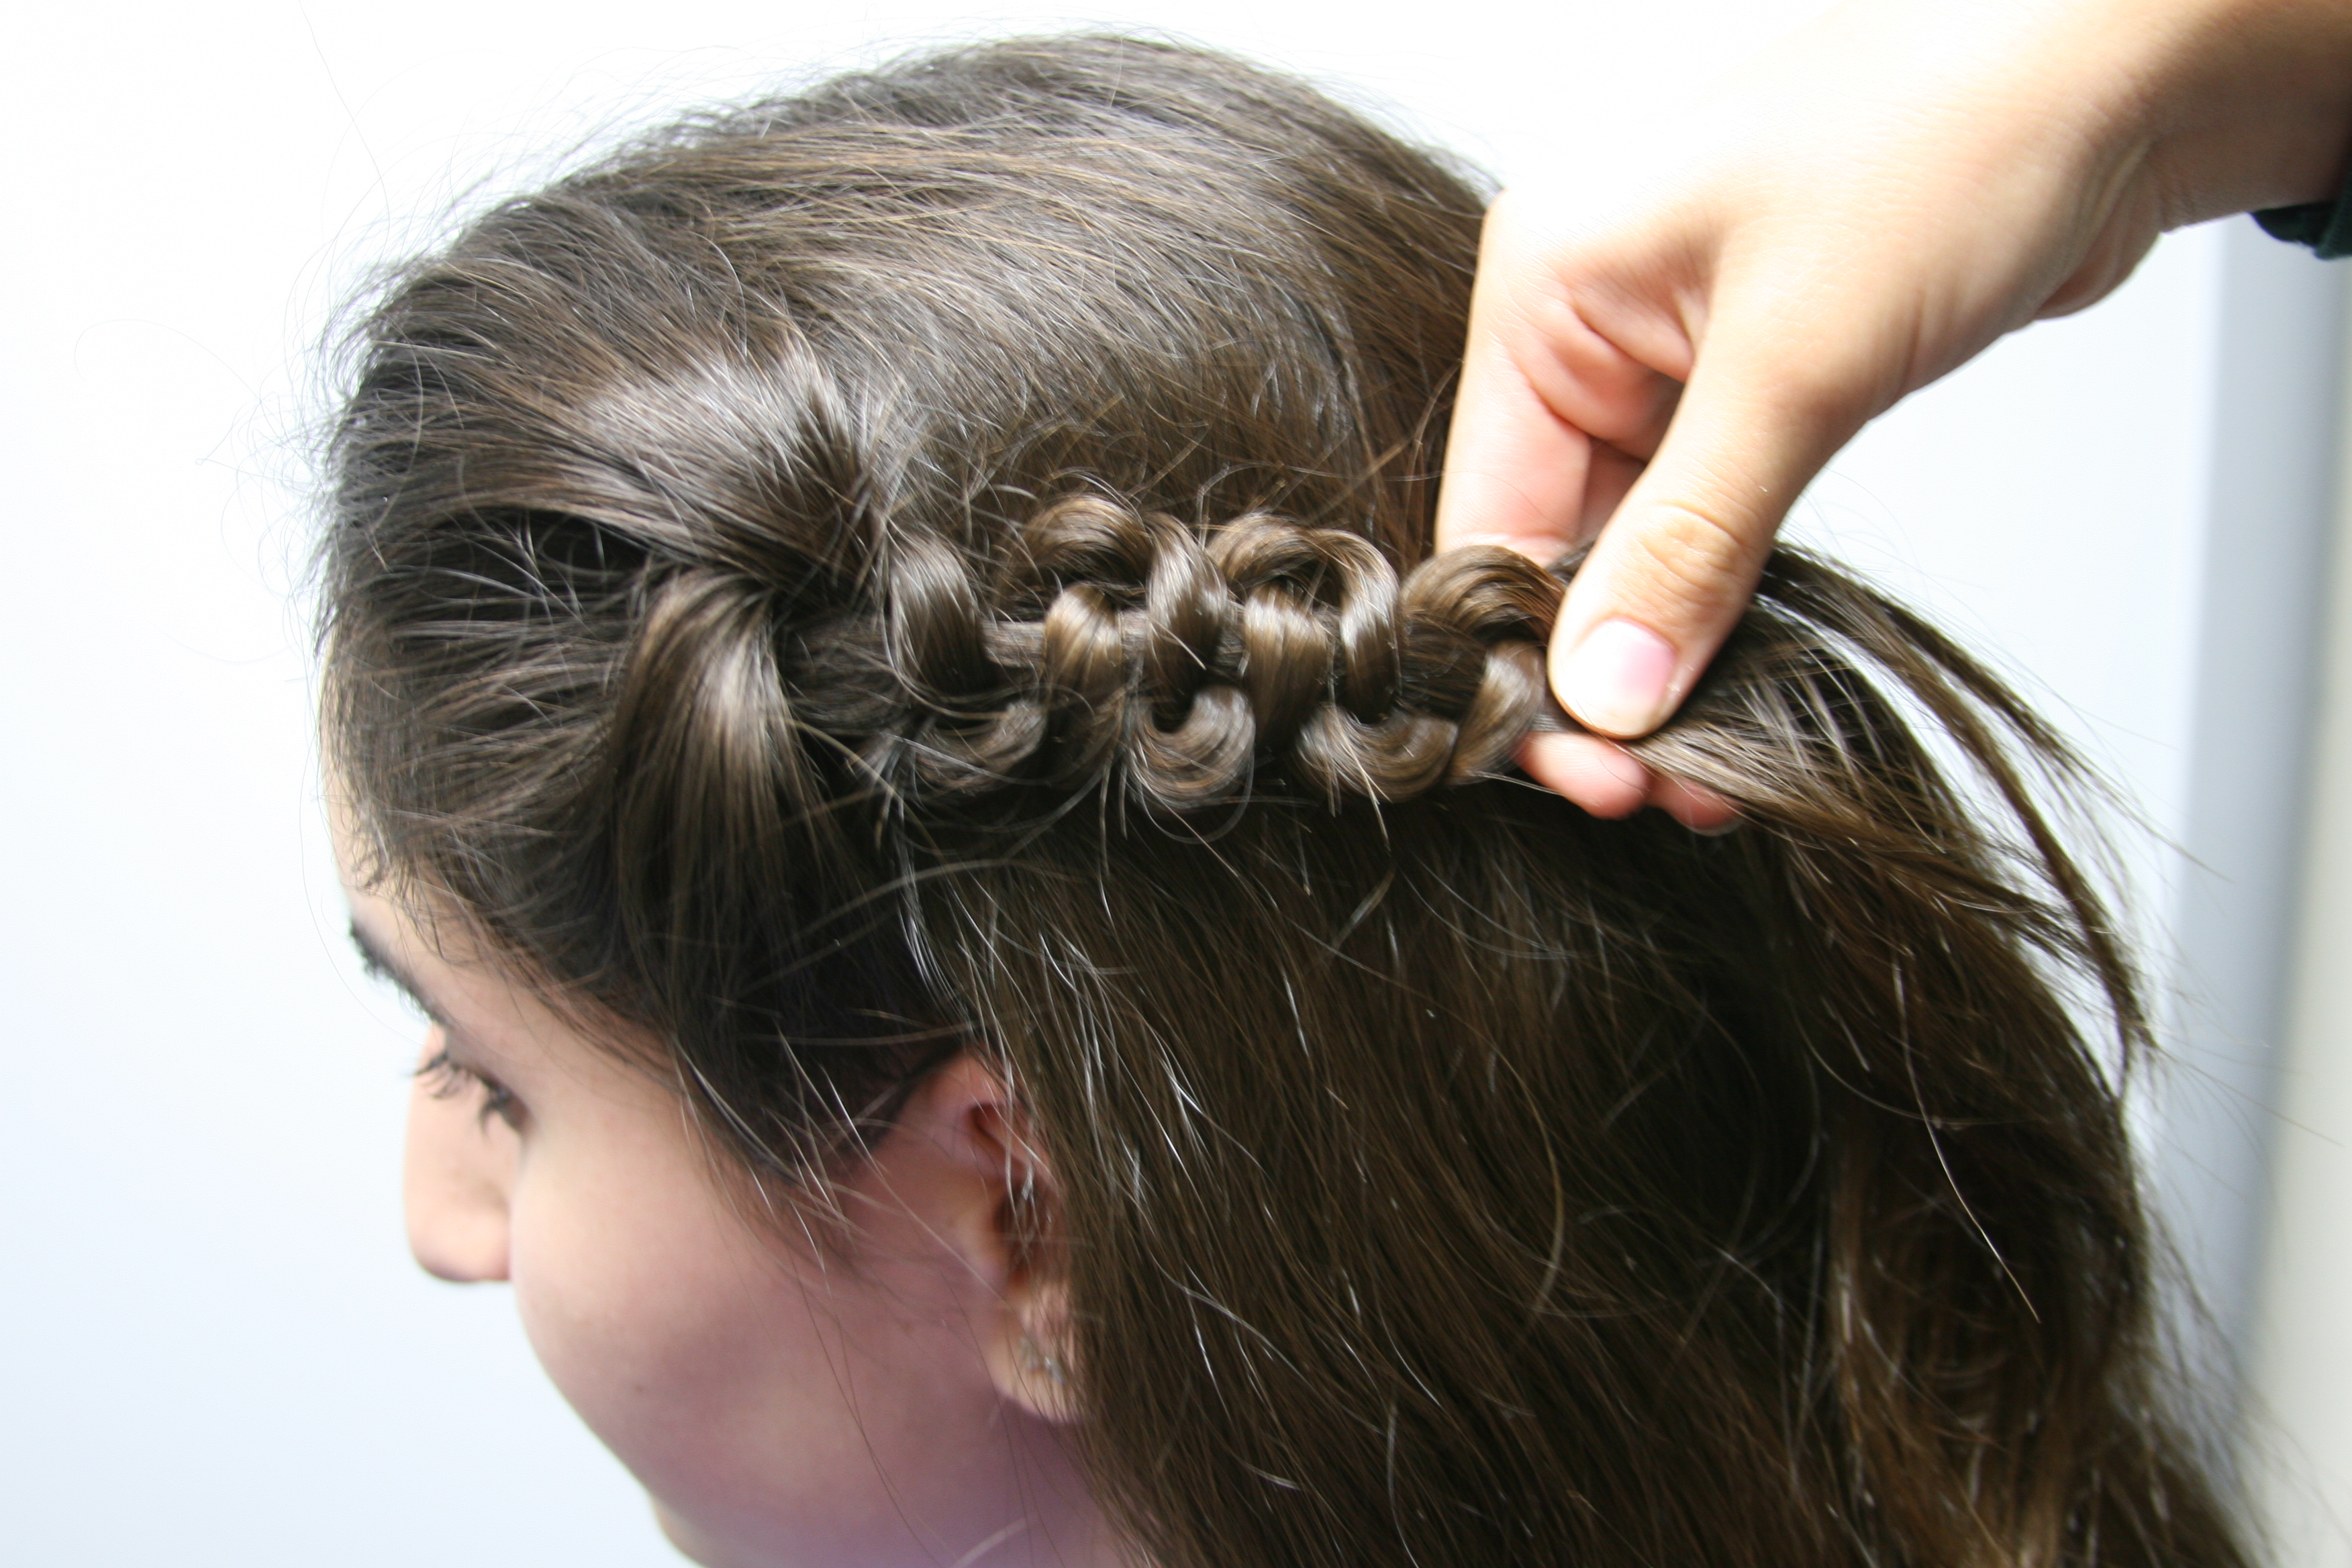 Astounding Quick And Easy Hairstyles For School Step By Step Inspiration Hairstyles For Women Draintrainus